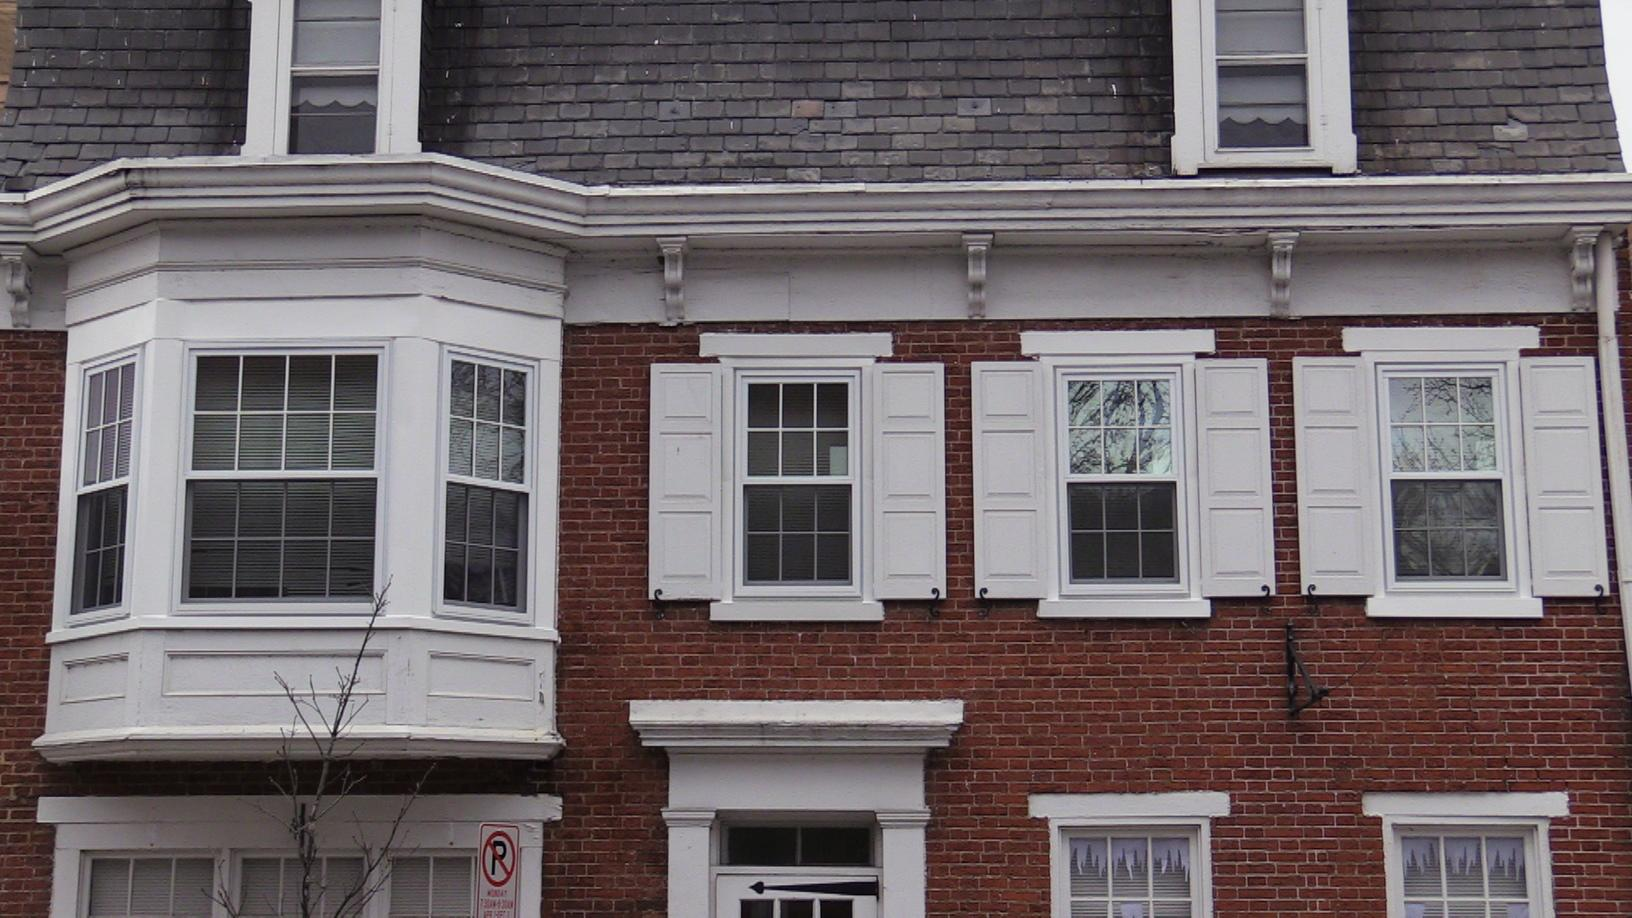 Double Hung Windows To Increase Efficiency At This Easton Rental Property